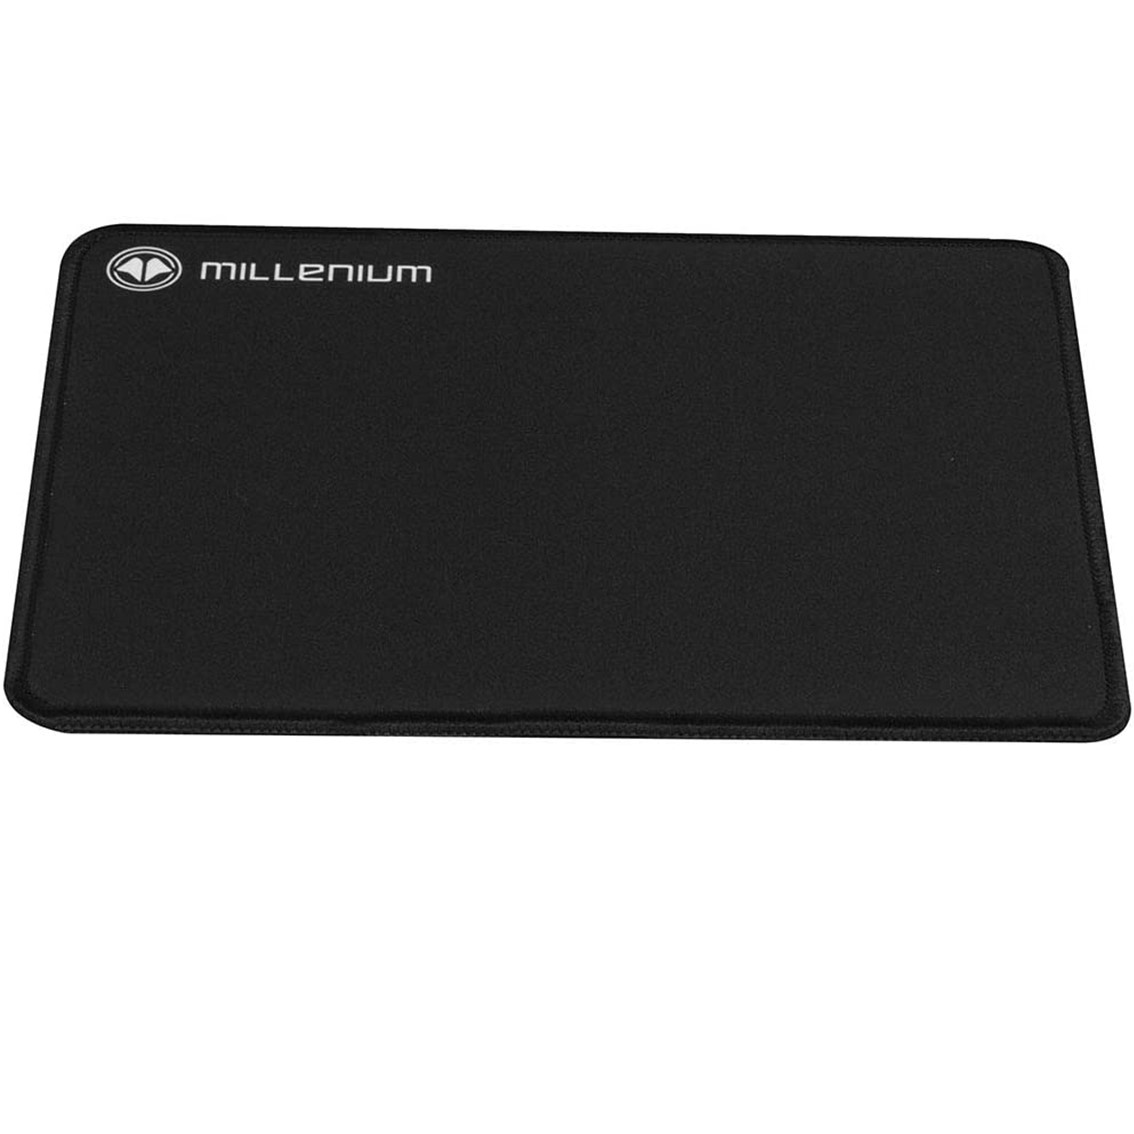 ALFOMBRILLA MILLENIUM SURFACE S GAMING 250X210X3MM